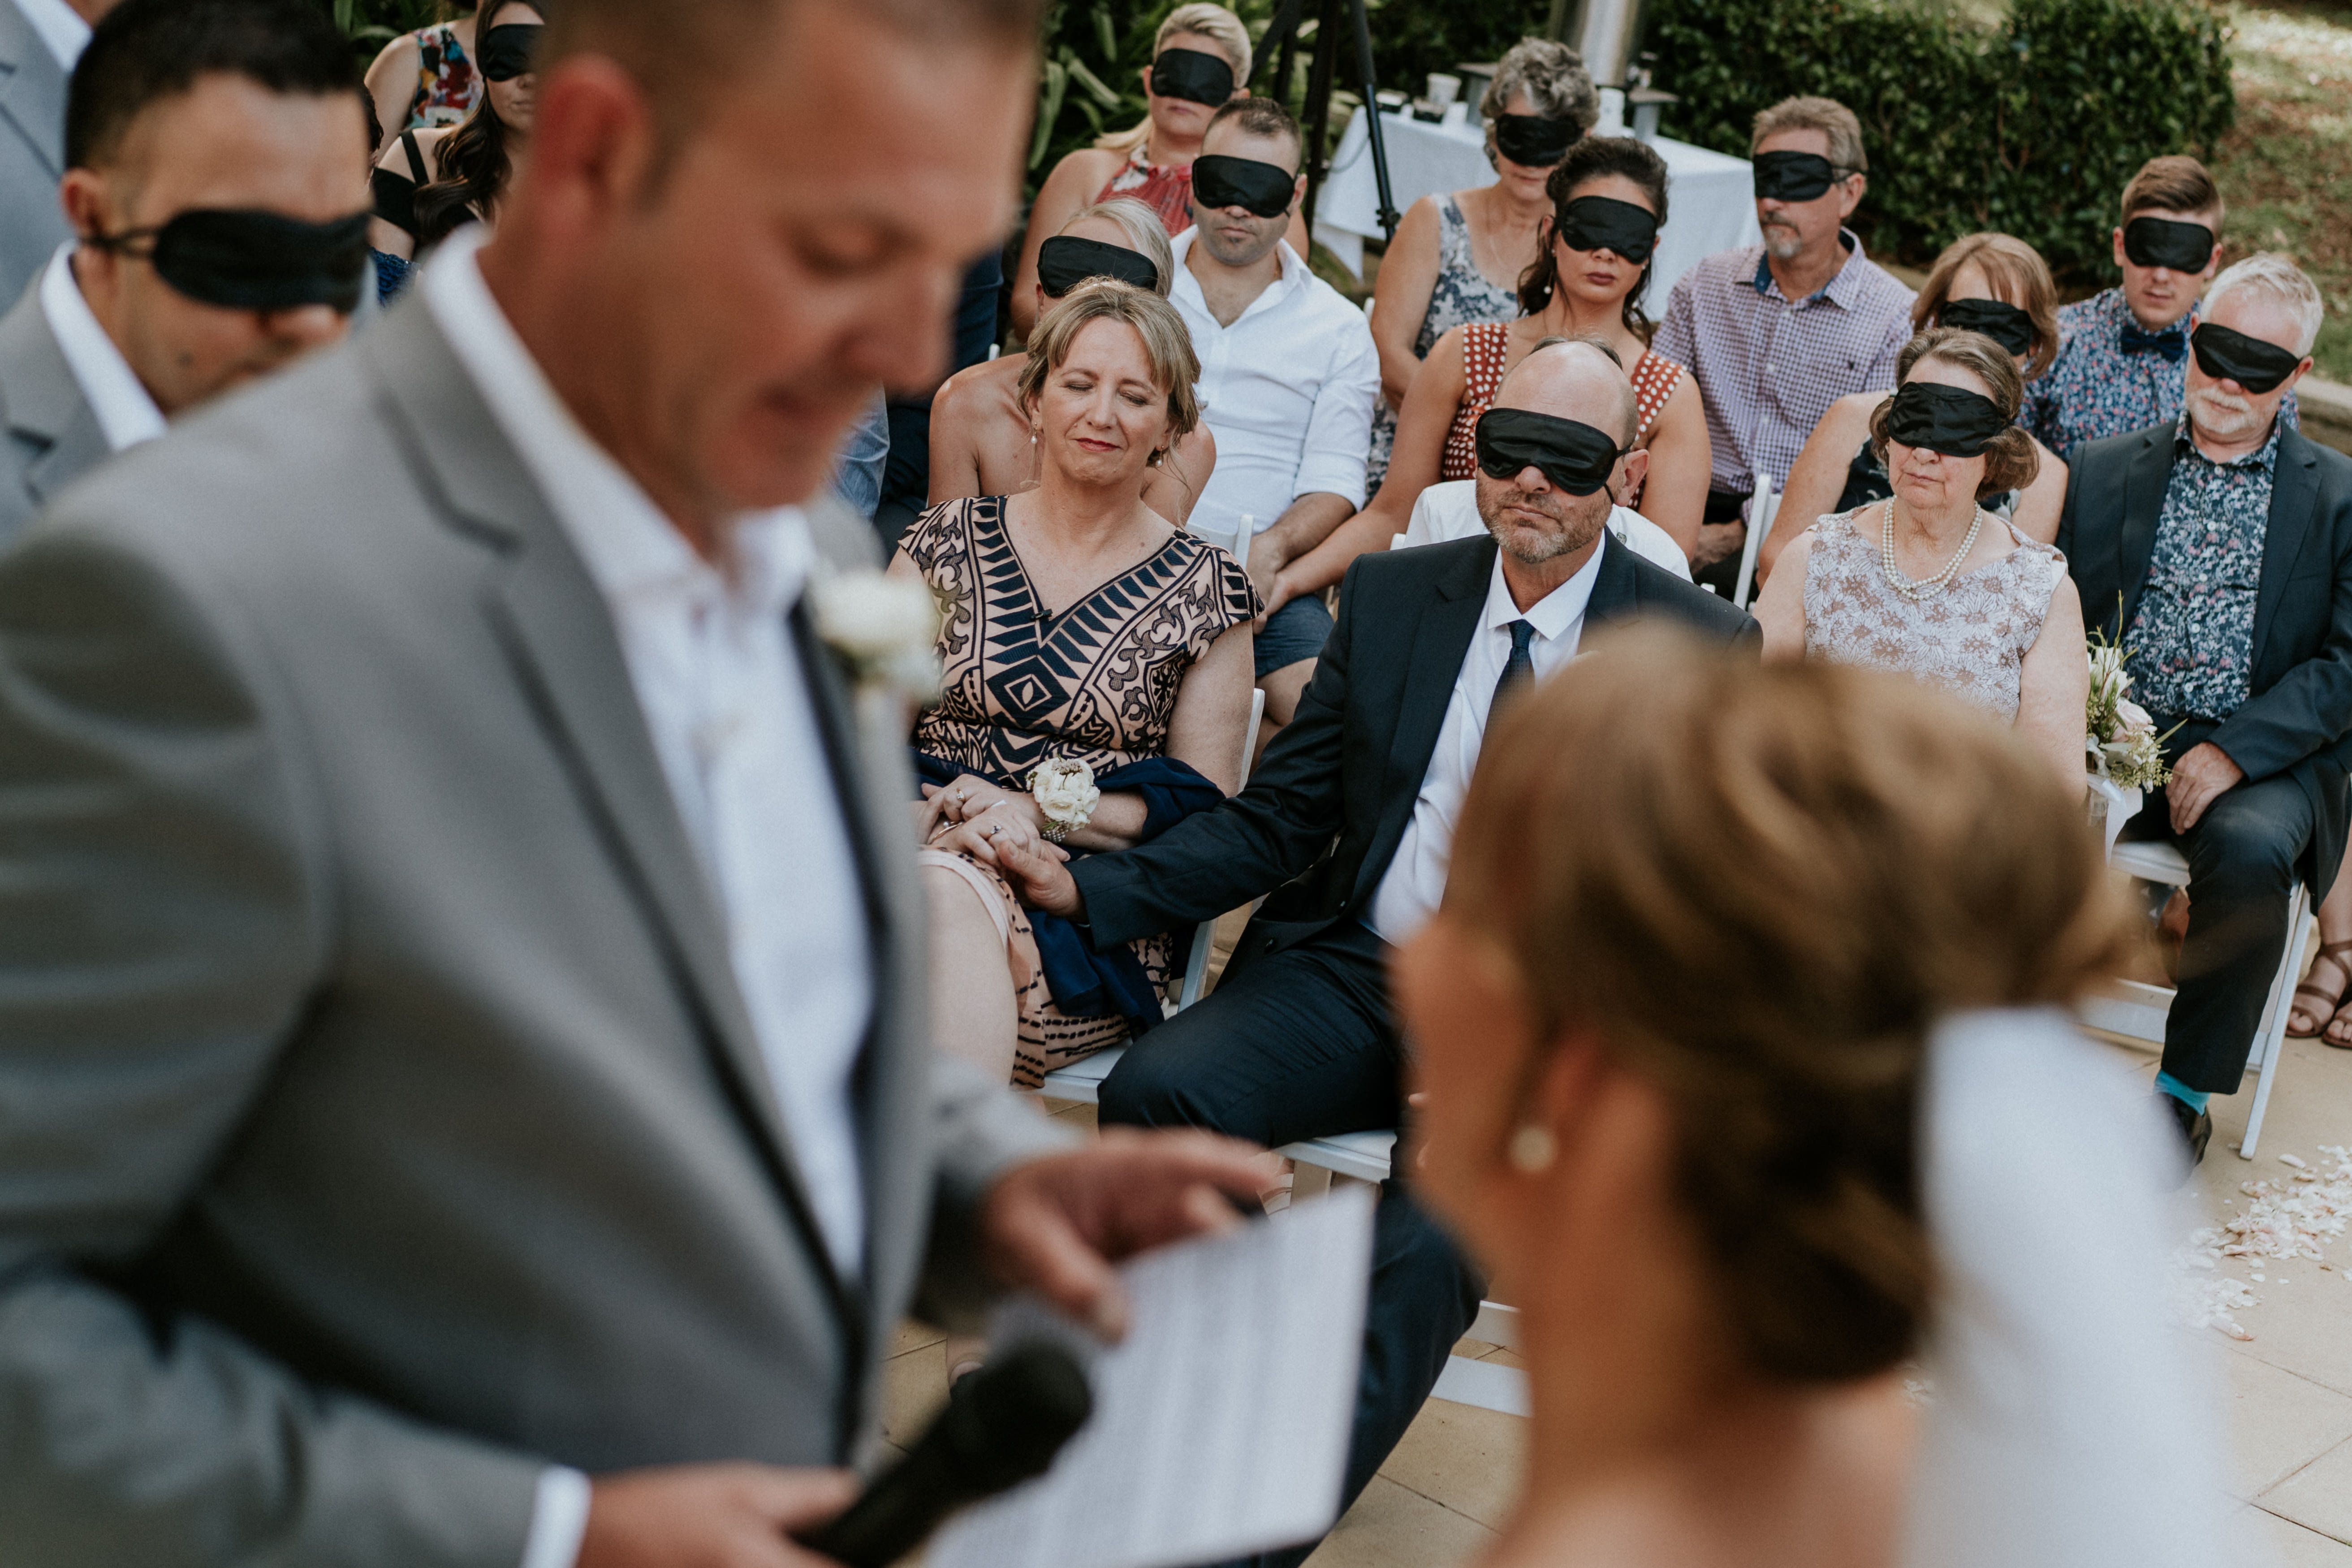 Wedding guests wear black blindfolds during the ceremony. One woman in the center of the shot is not...